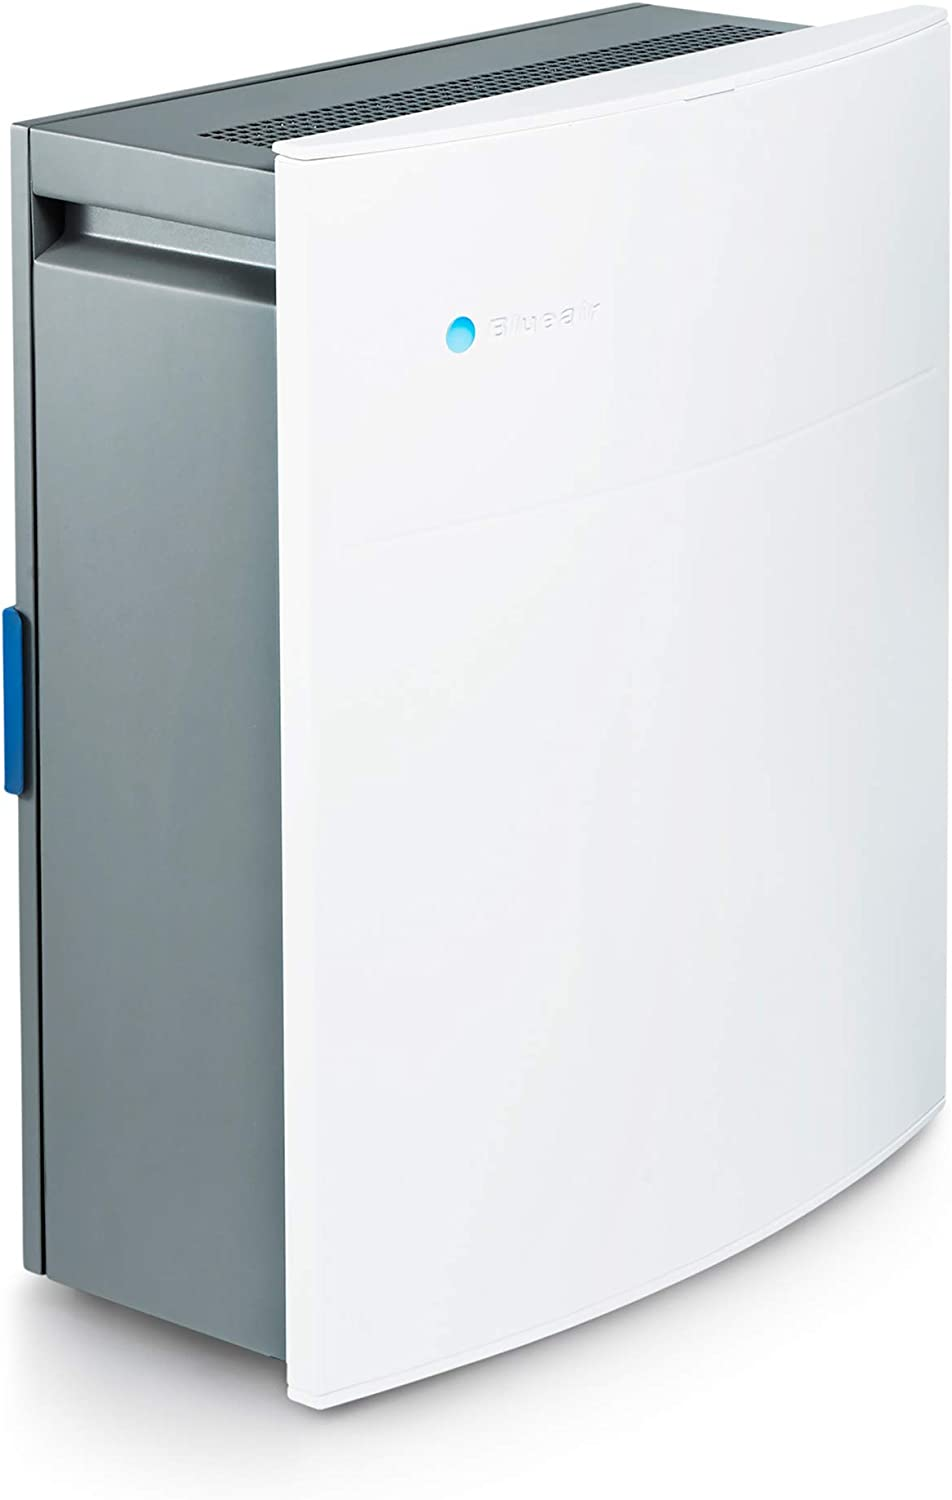 Blueair Classic 280i Air Purifier for home with HEPASilent Technology and DualProtection Filters for relief from Allergies, Viruses, Pets, Dust, Asthma, Odors, Smoke – Small to Medium Rooms